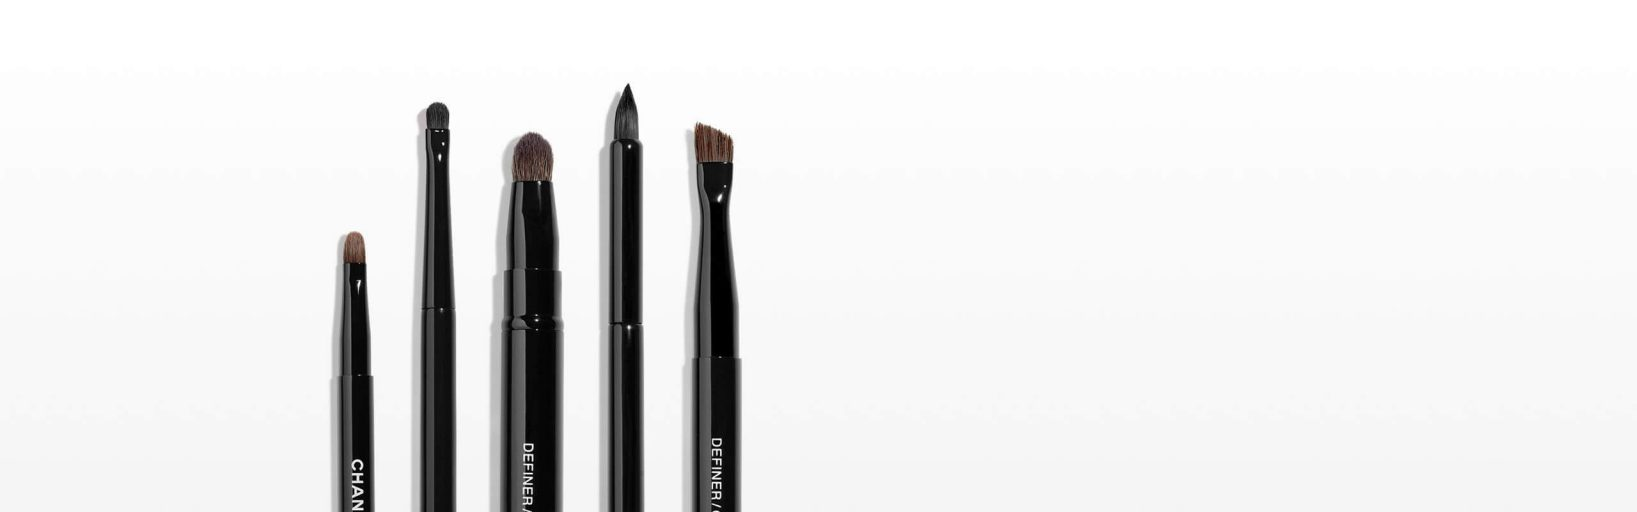 Eye Brushes - CHANEL